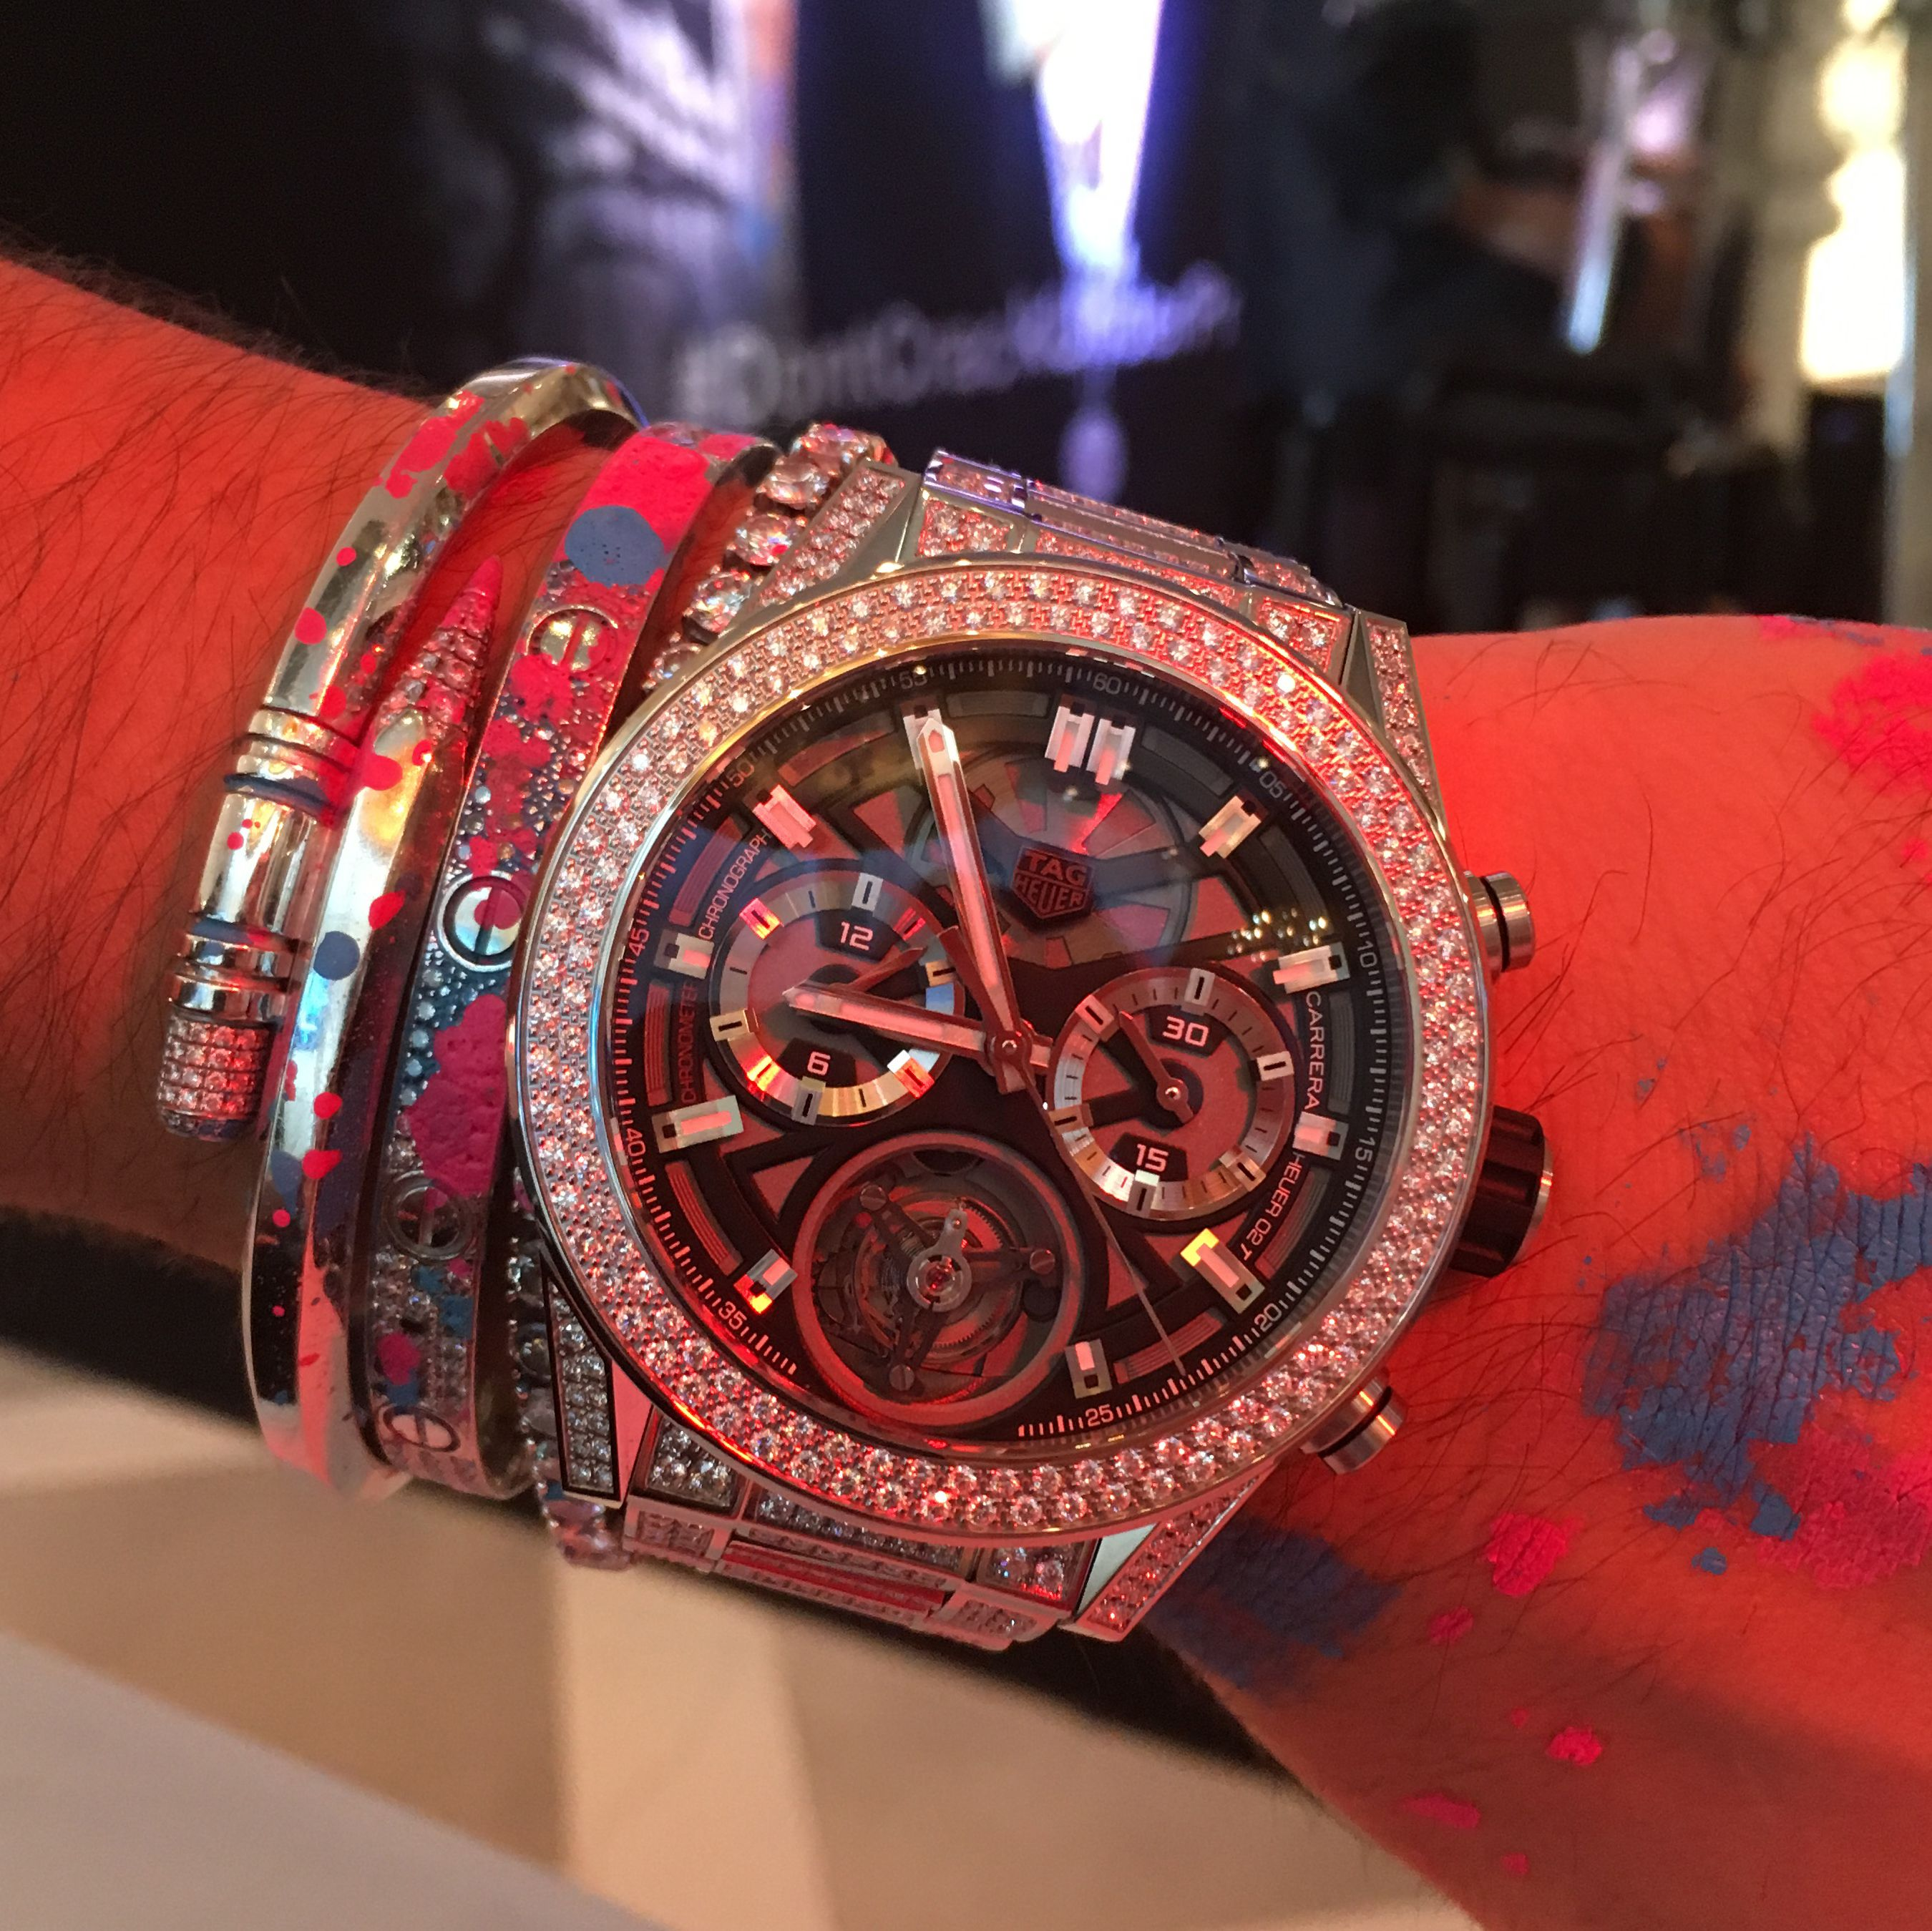 On Ablogtowatch Com Now Tag Heuer Gets Tagged In Partnership